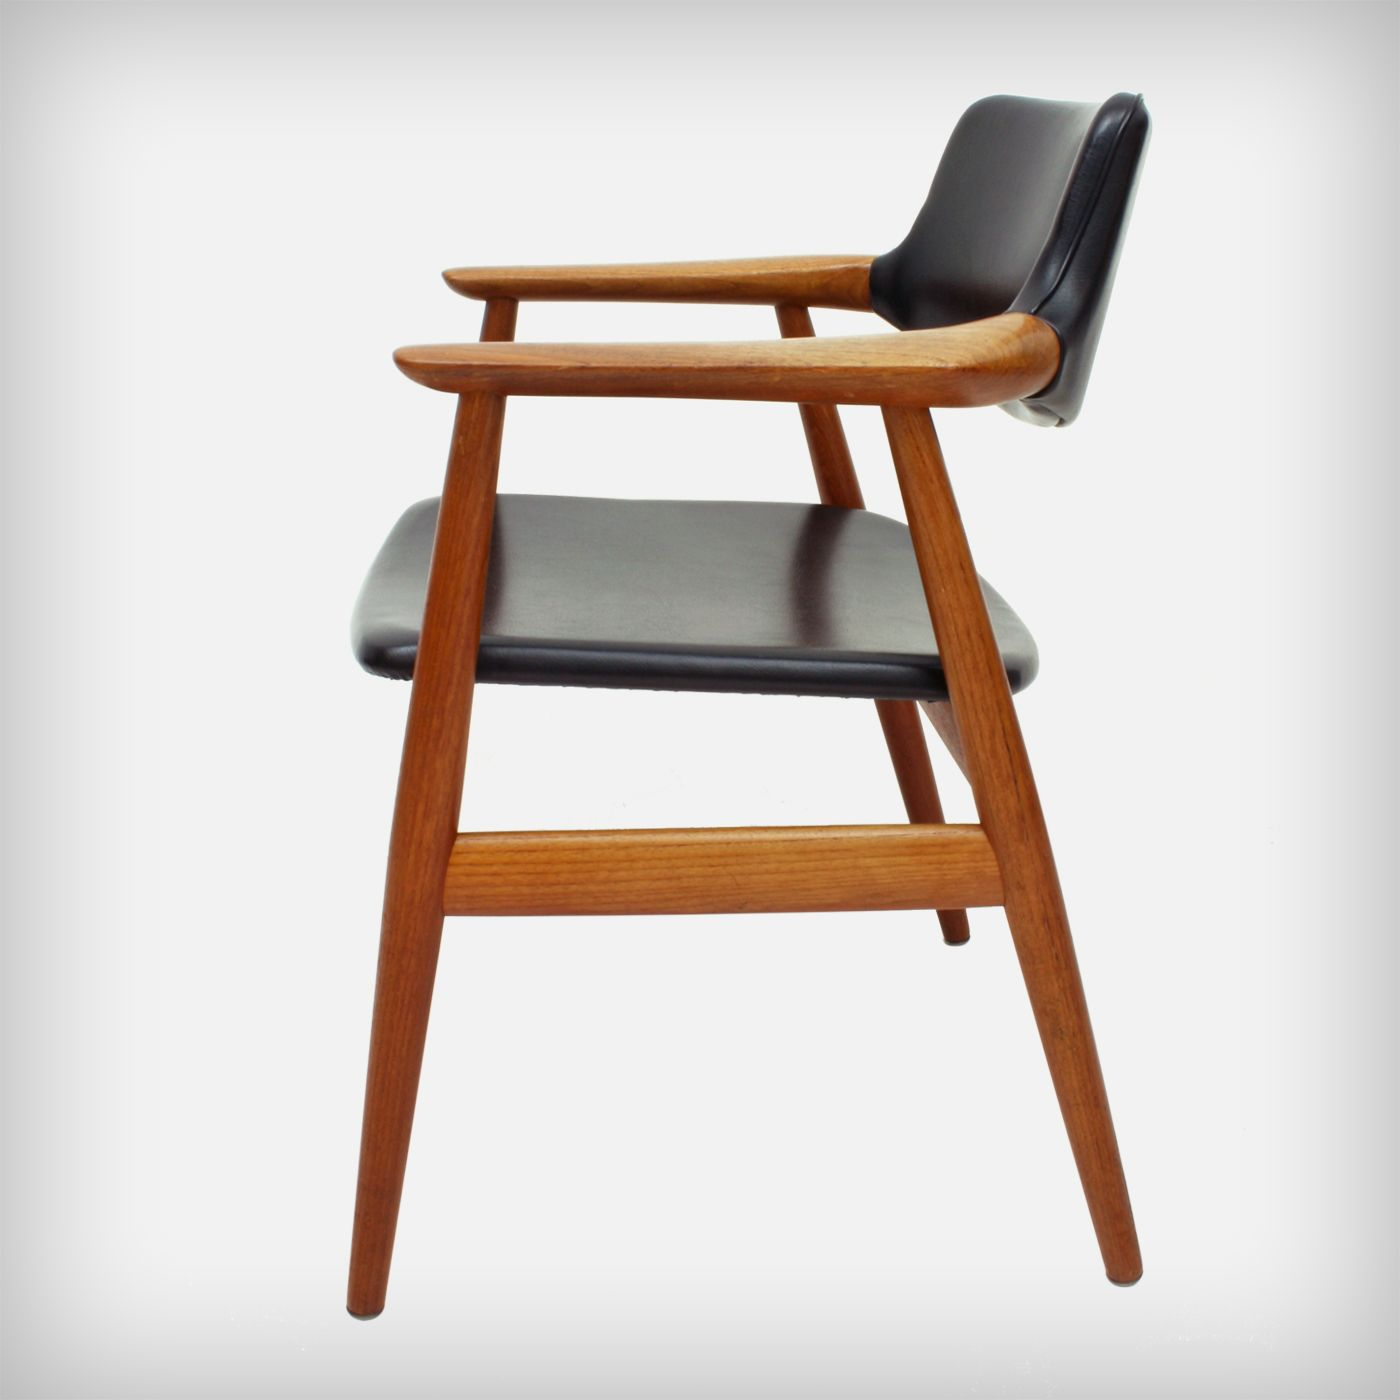 teak skai armchair model gm11 by svend age eriksen for glostrup mobelfabrik mobel